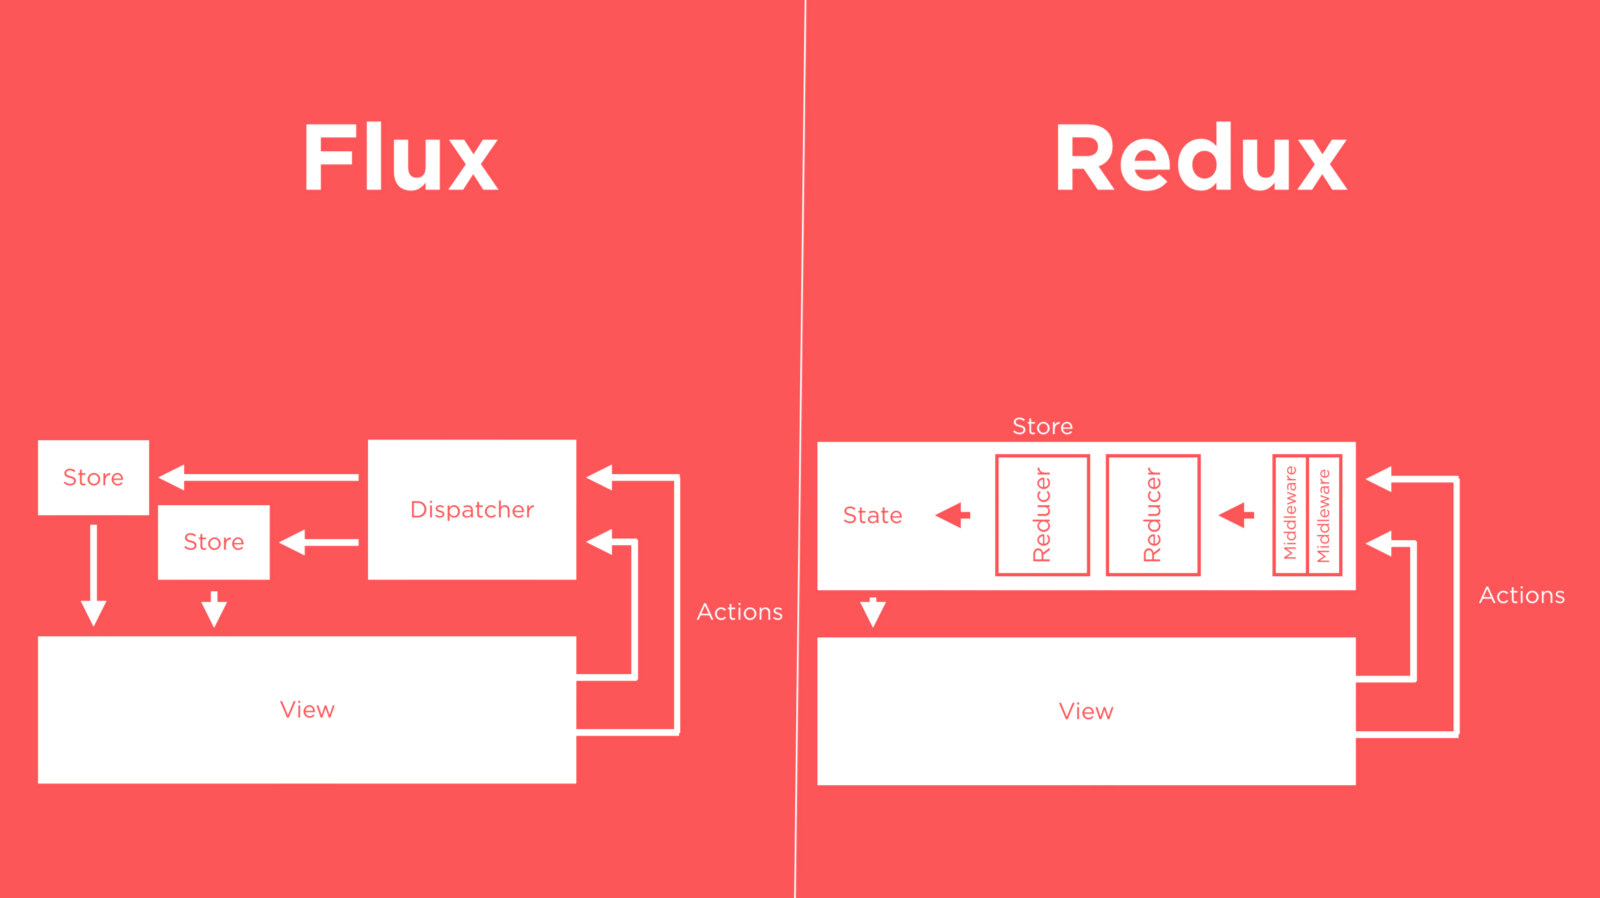 Flux Vs Redux Like I Mentioned Above, Developing Quizup